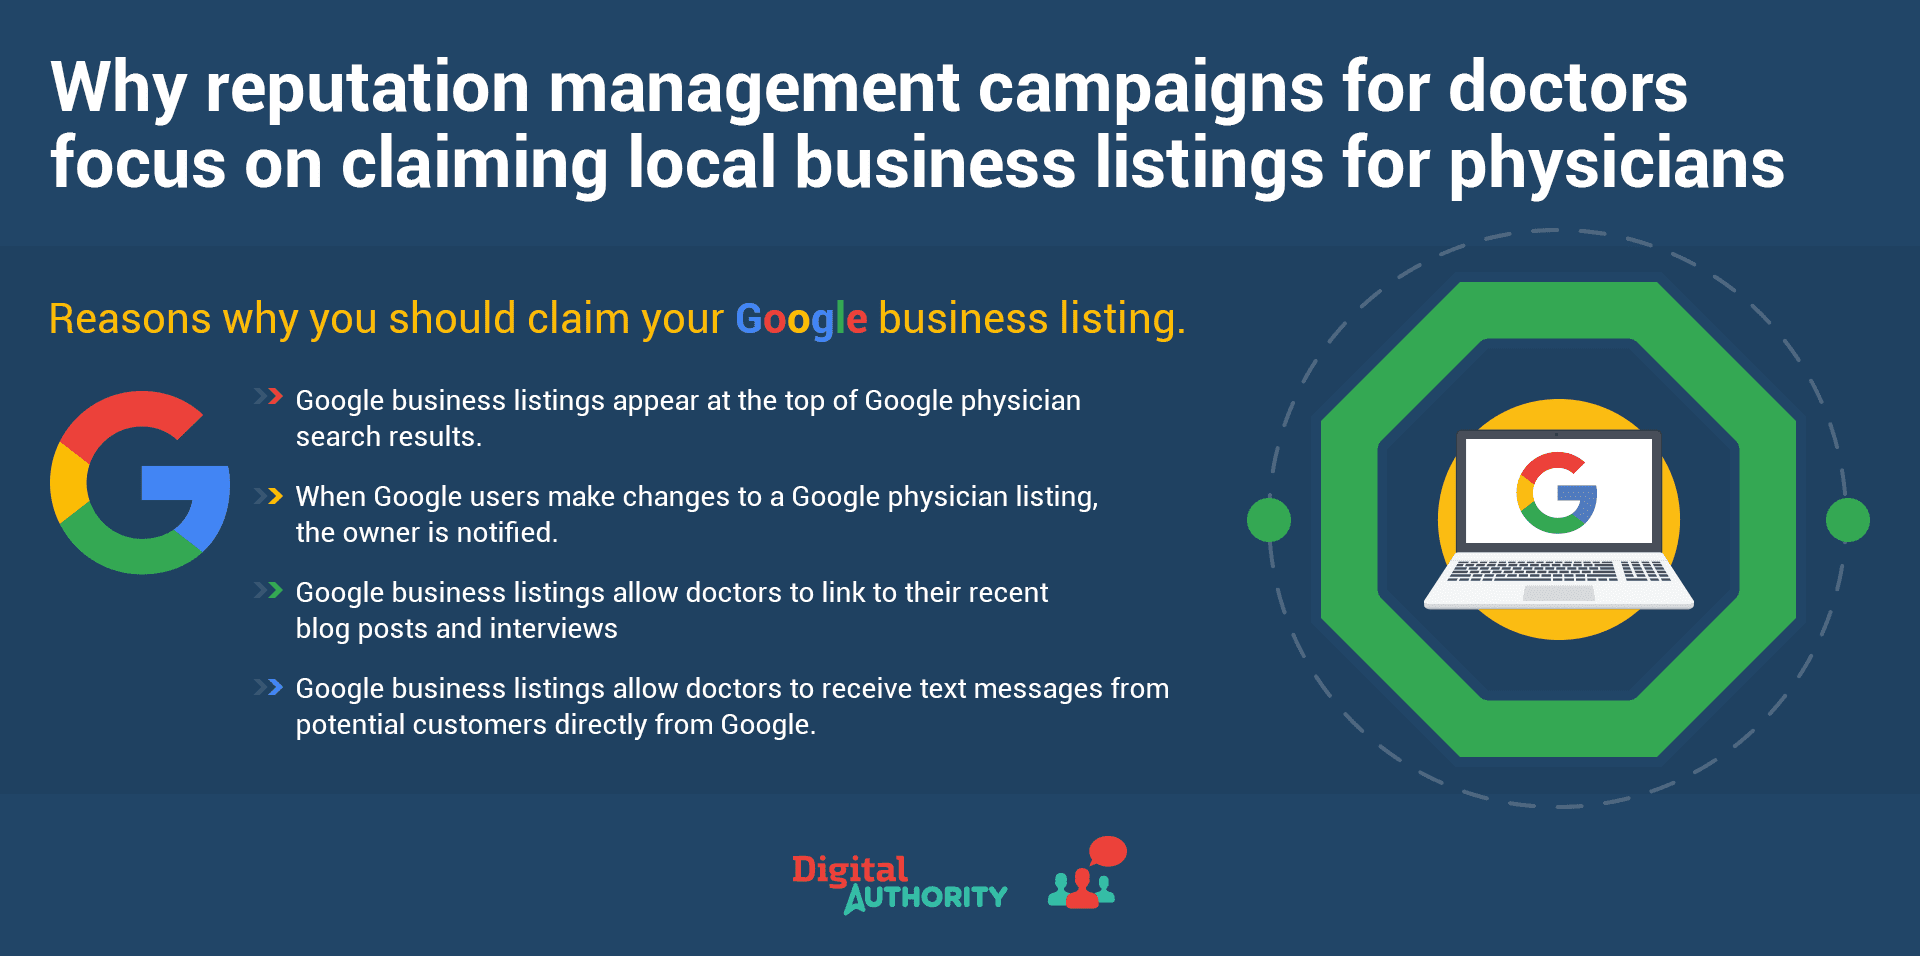 Why reputation management campaigns for doctors focus on claiming local business listings for physicians. Google business listings appear at the top of Google physician search results. When Google users make changes to a Google physician listing, the owner is notified. Google business listings allow doctors to link to their recent blog posts and interviews. Google business listings allow doctors to receive text messages from potential customers directly from Google.